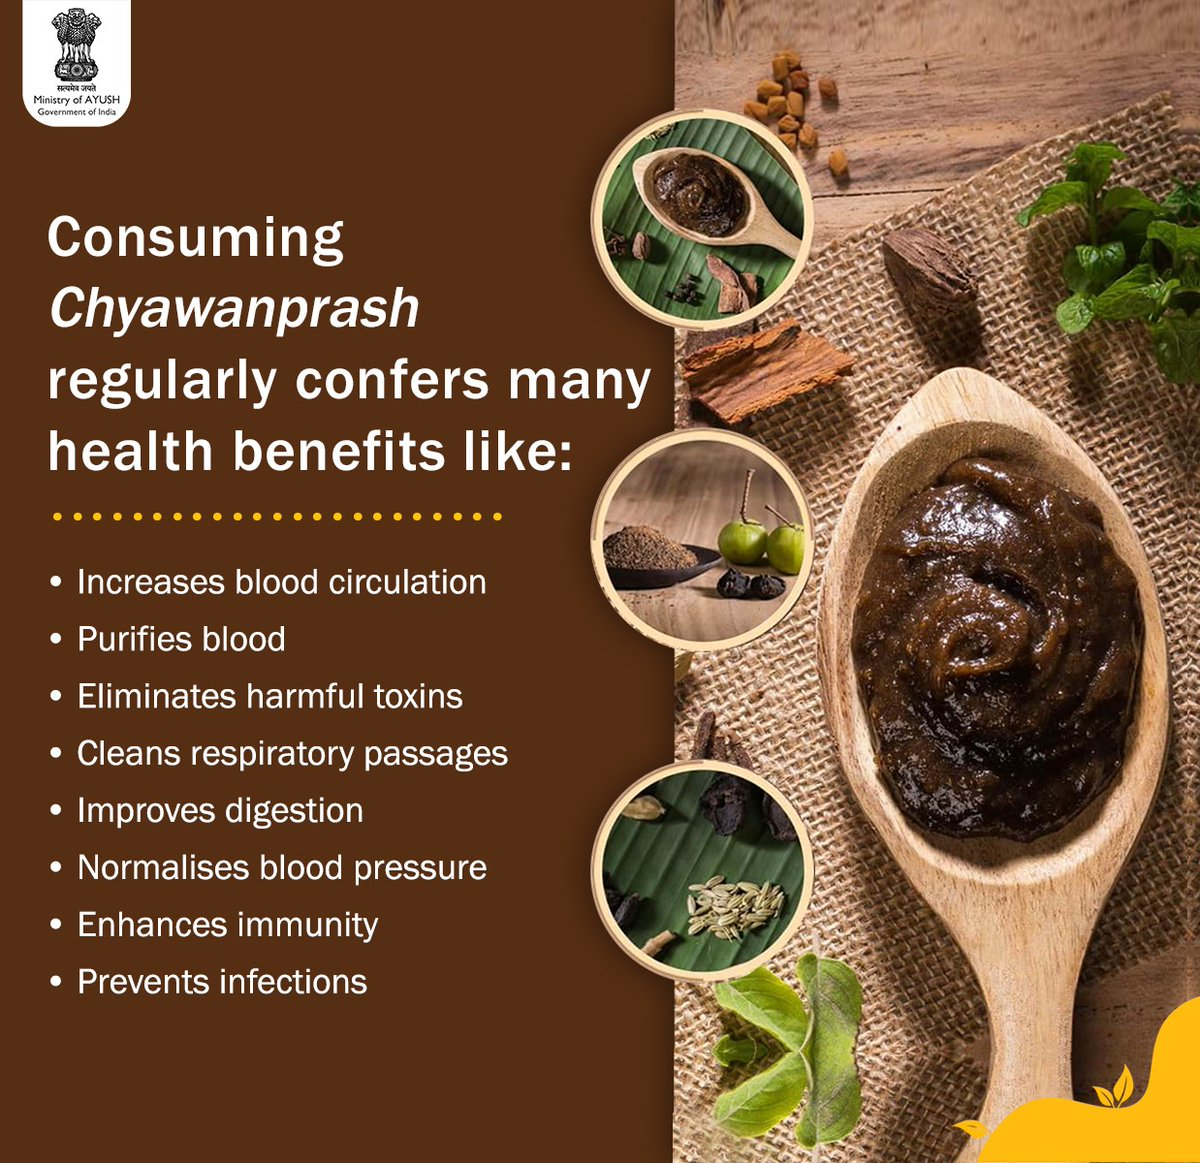 Chyawanprash from #Ayurveda is an age-old powerful formulation that aids the body in the production of haemoglobin and white blood cells.   Its main component #Amla, is a fruit known for its antioxidant properties.